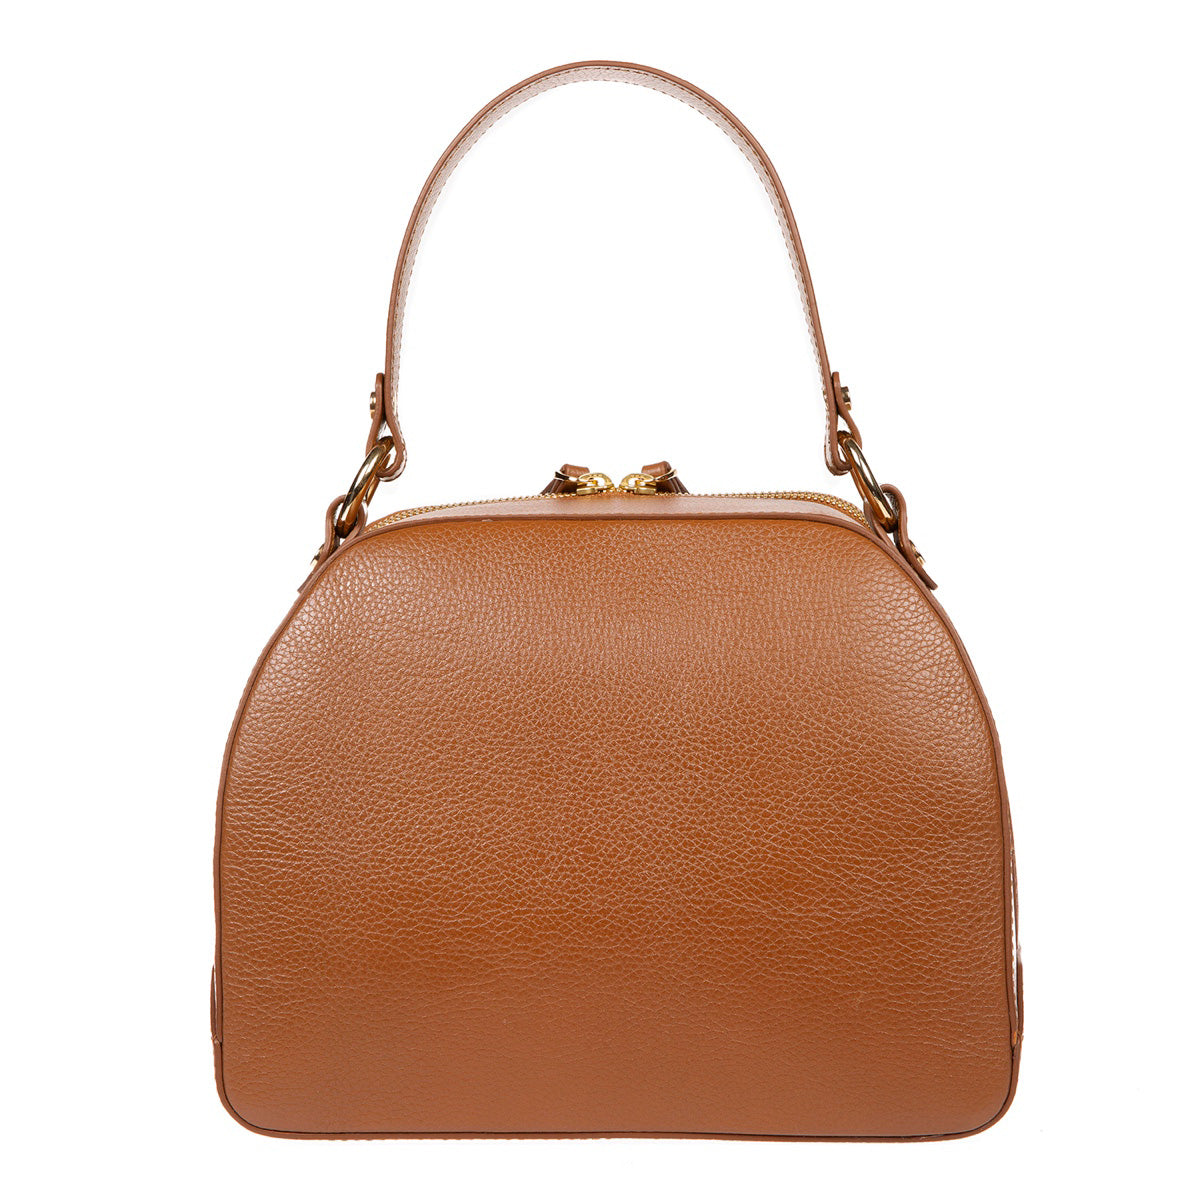 F A T M A | Demi Bag Tan